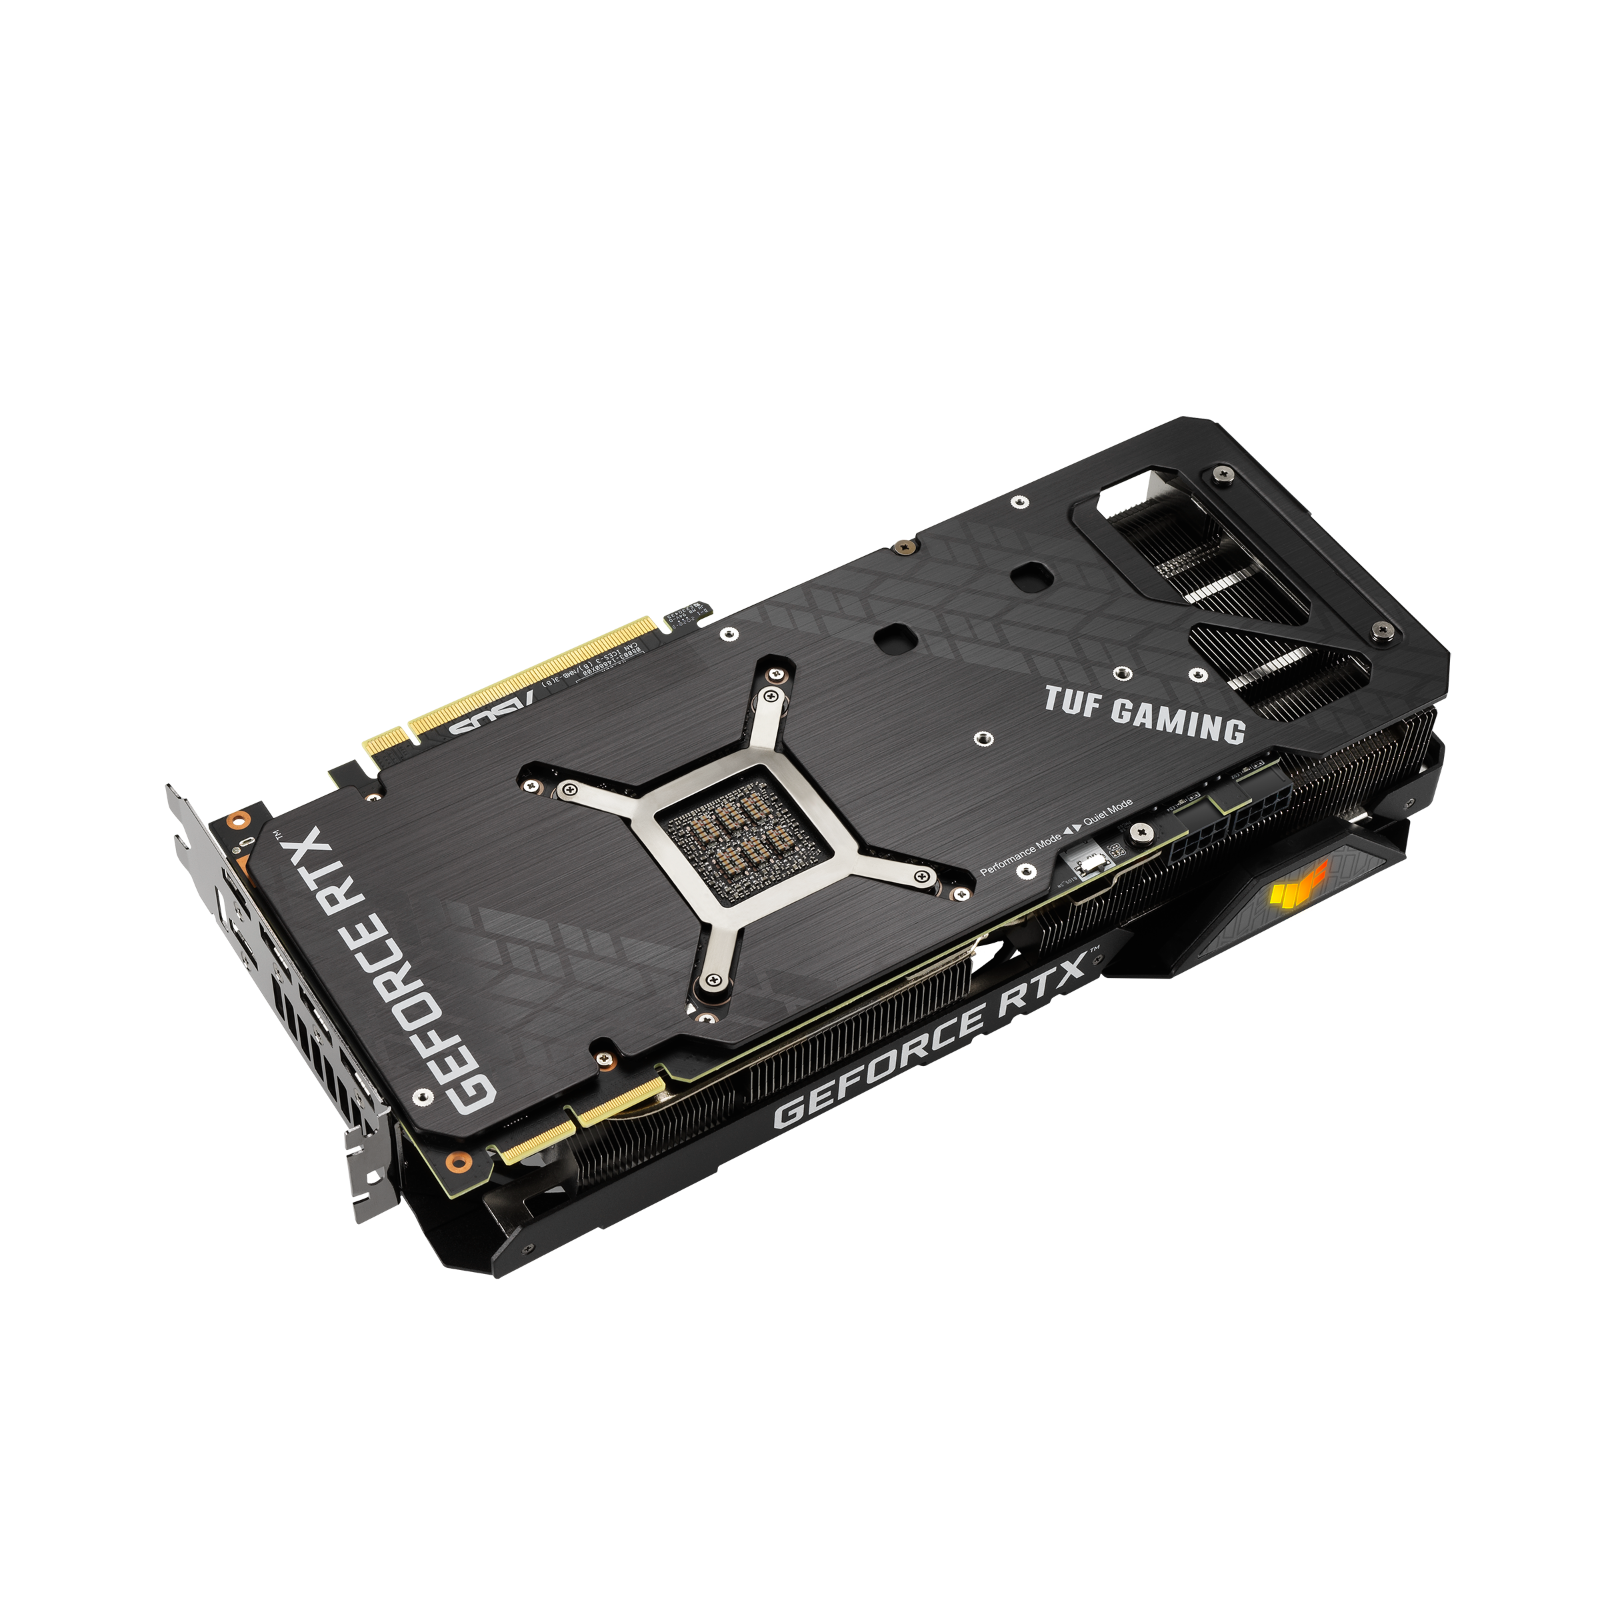 ASUS TUF Gaming GeForce RTX™ 3090 Graphics Cards 24gb